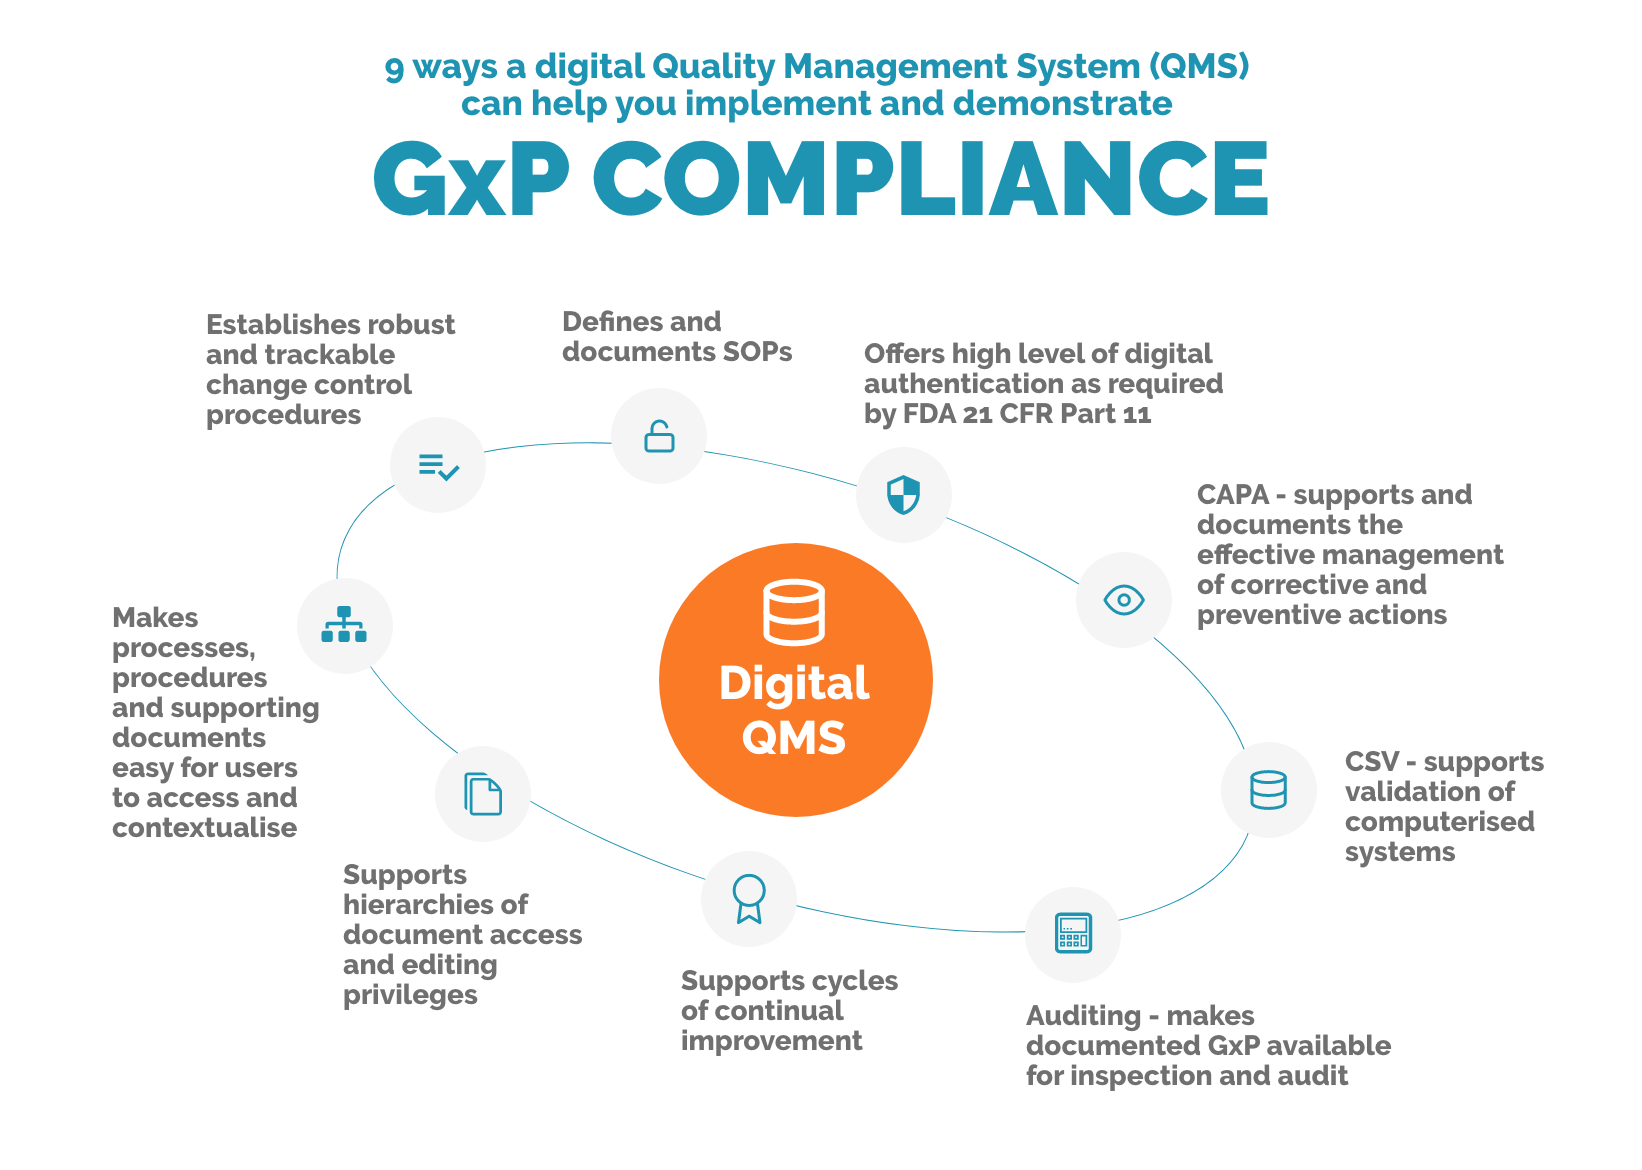 GxP compliance through Digital Quality Management Systems